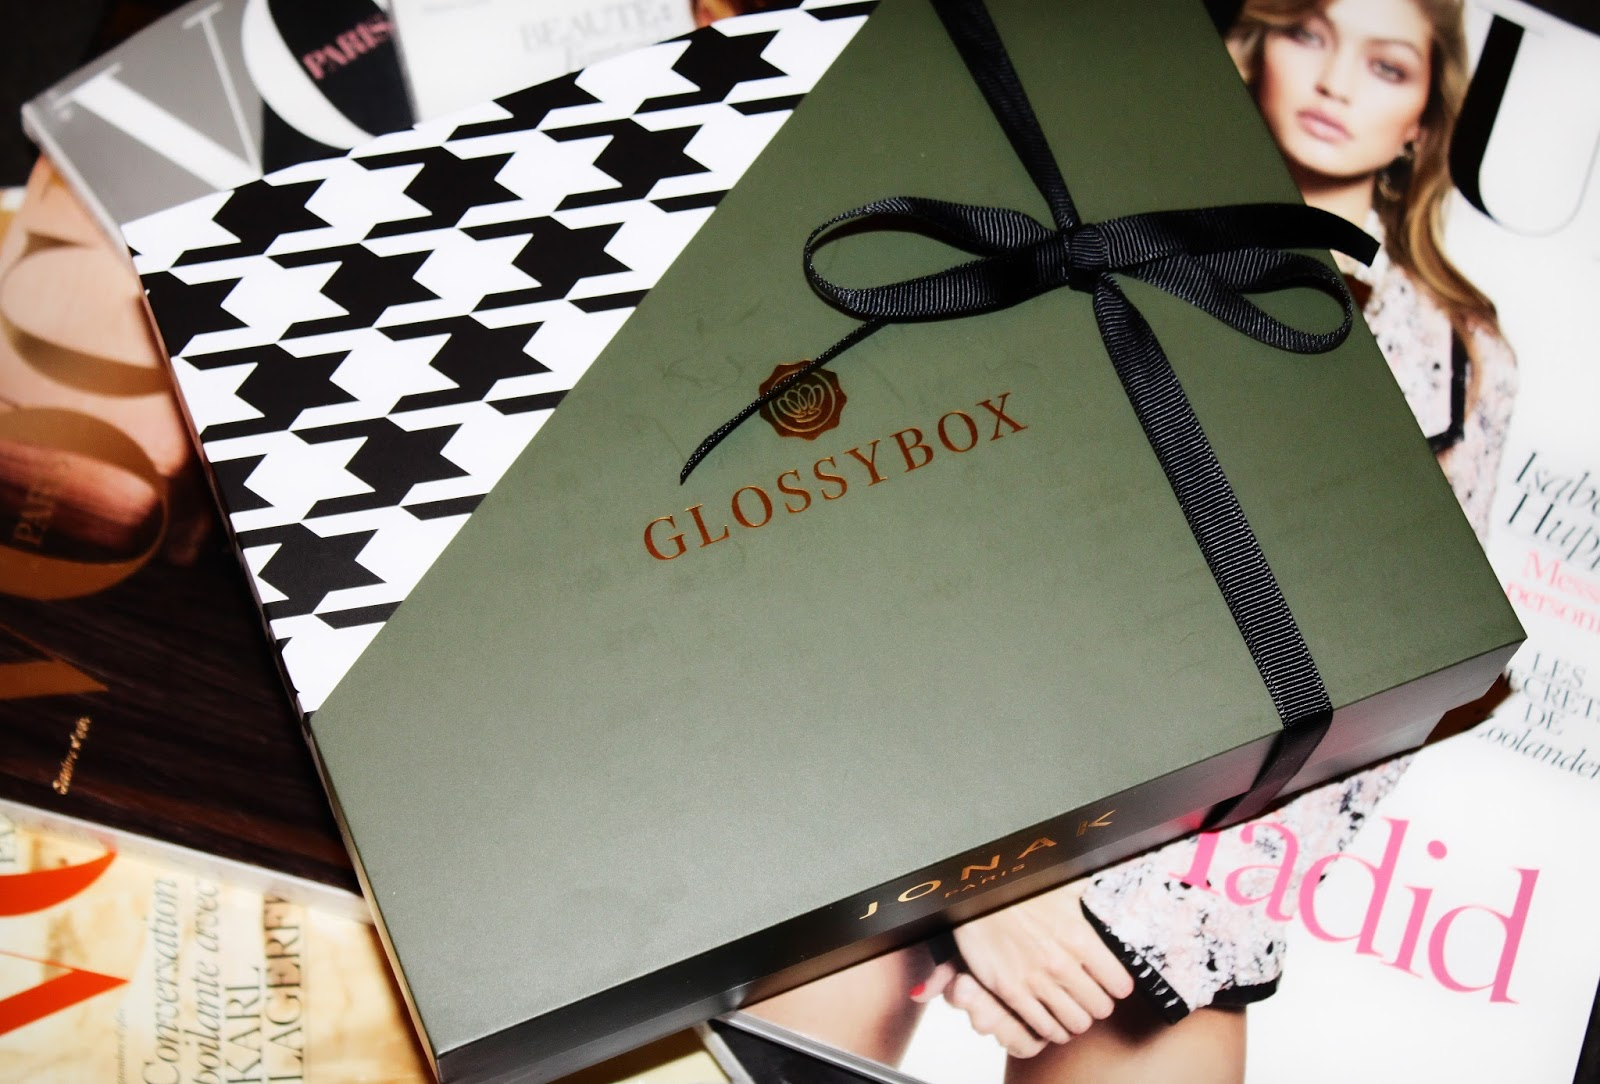 glossybox novembre gold beauté jonak collaboration